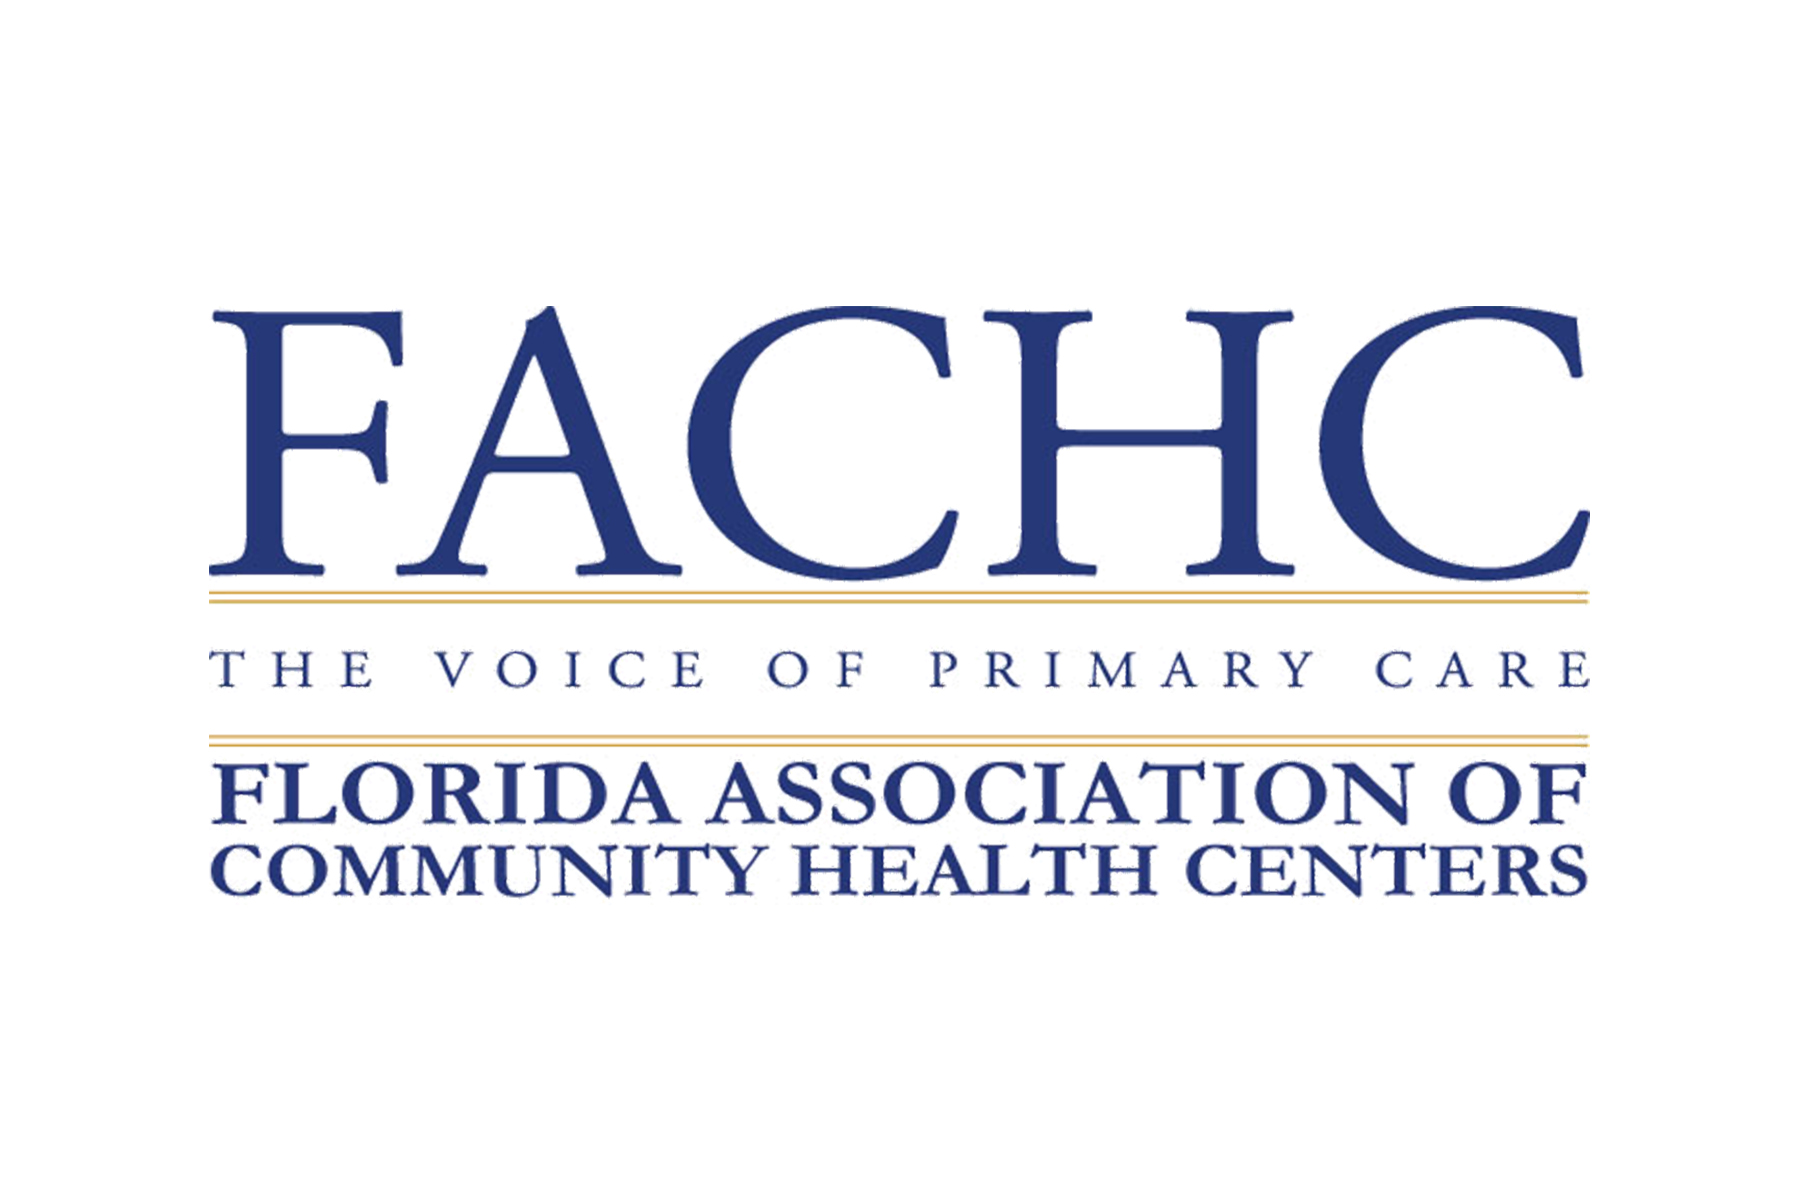 Florida Association of Community Health Centers.jpg